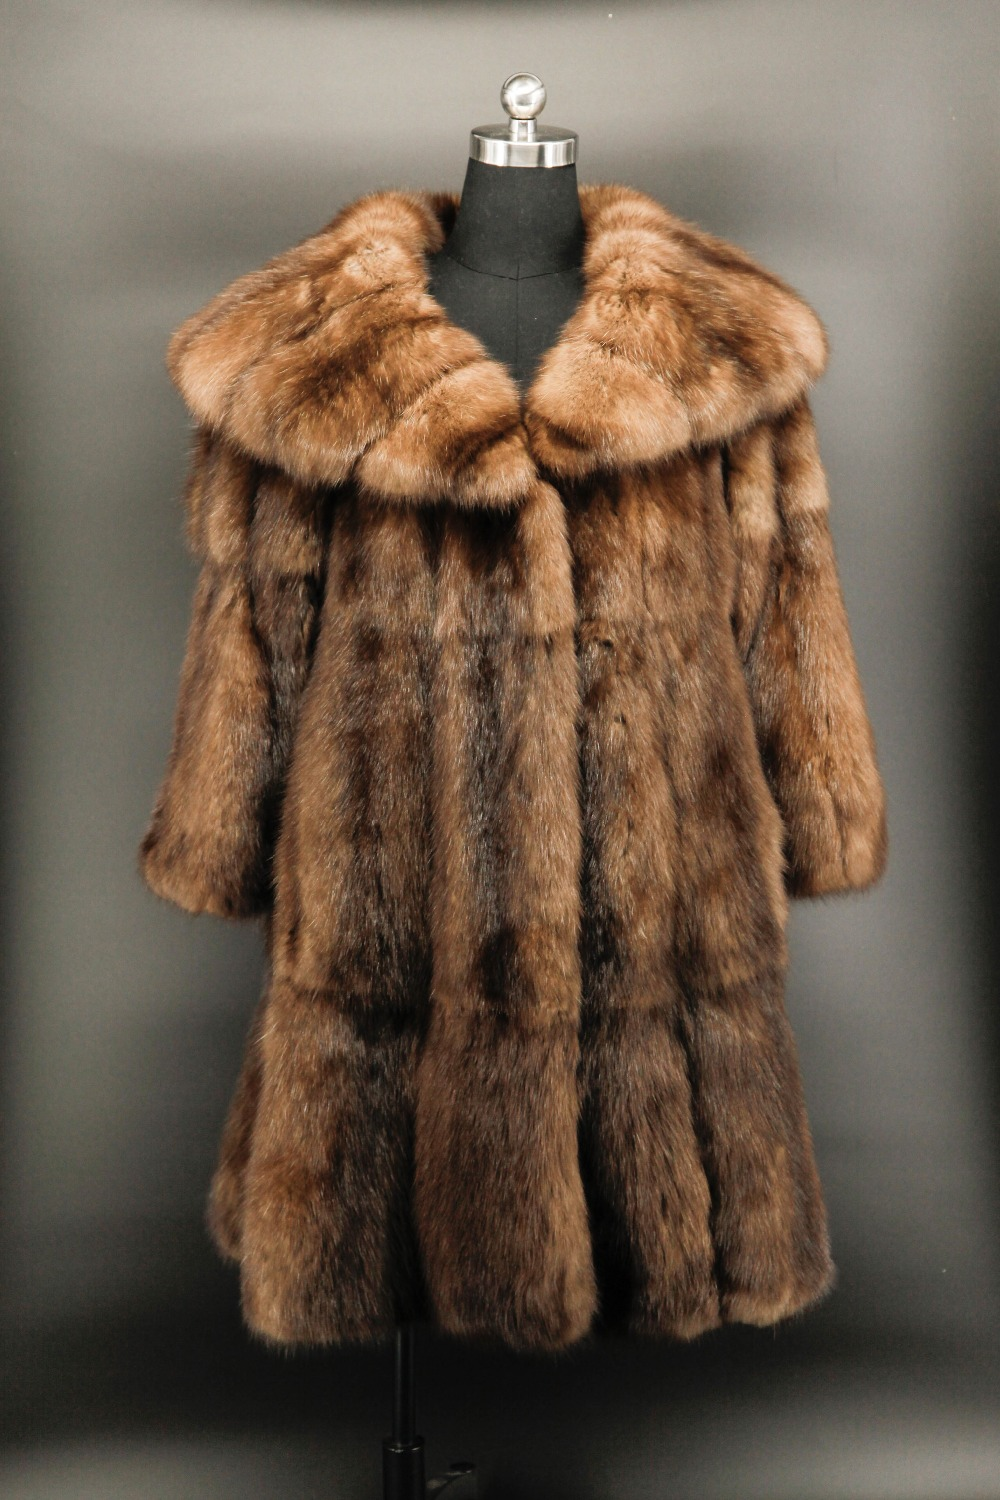 Arlenesain custom real sable fur long women coat with big collar(China)